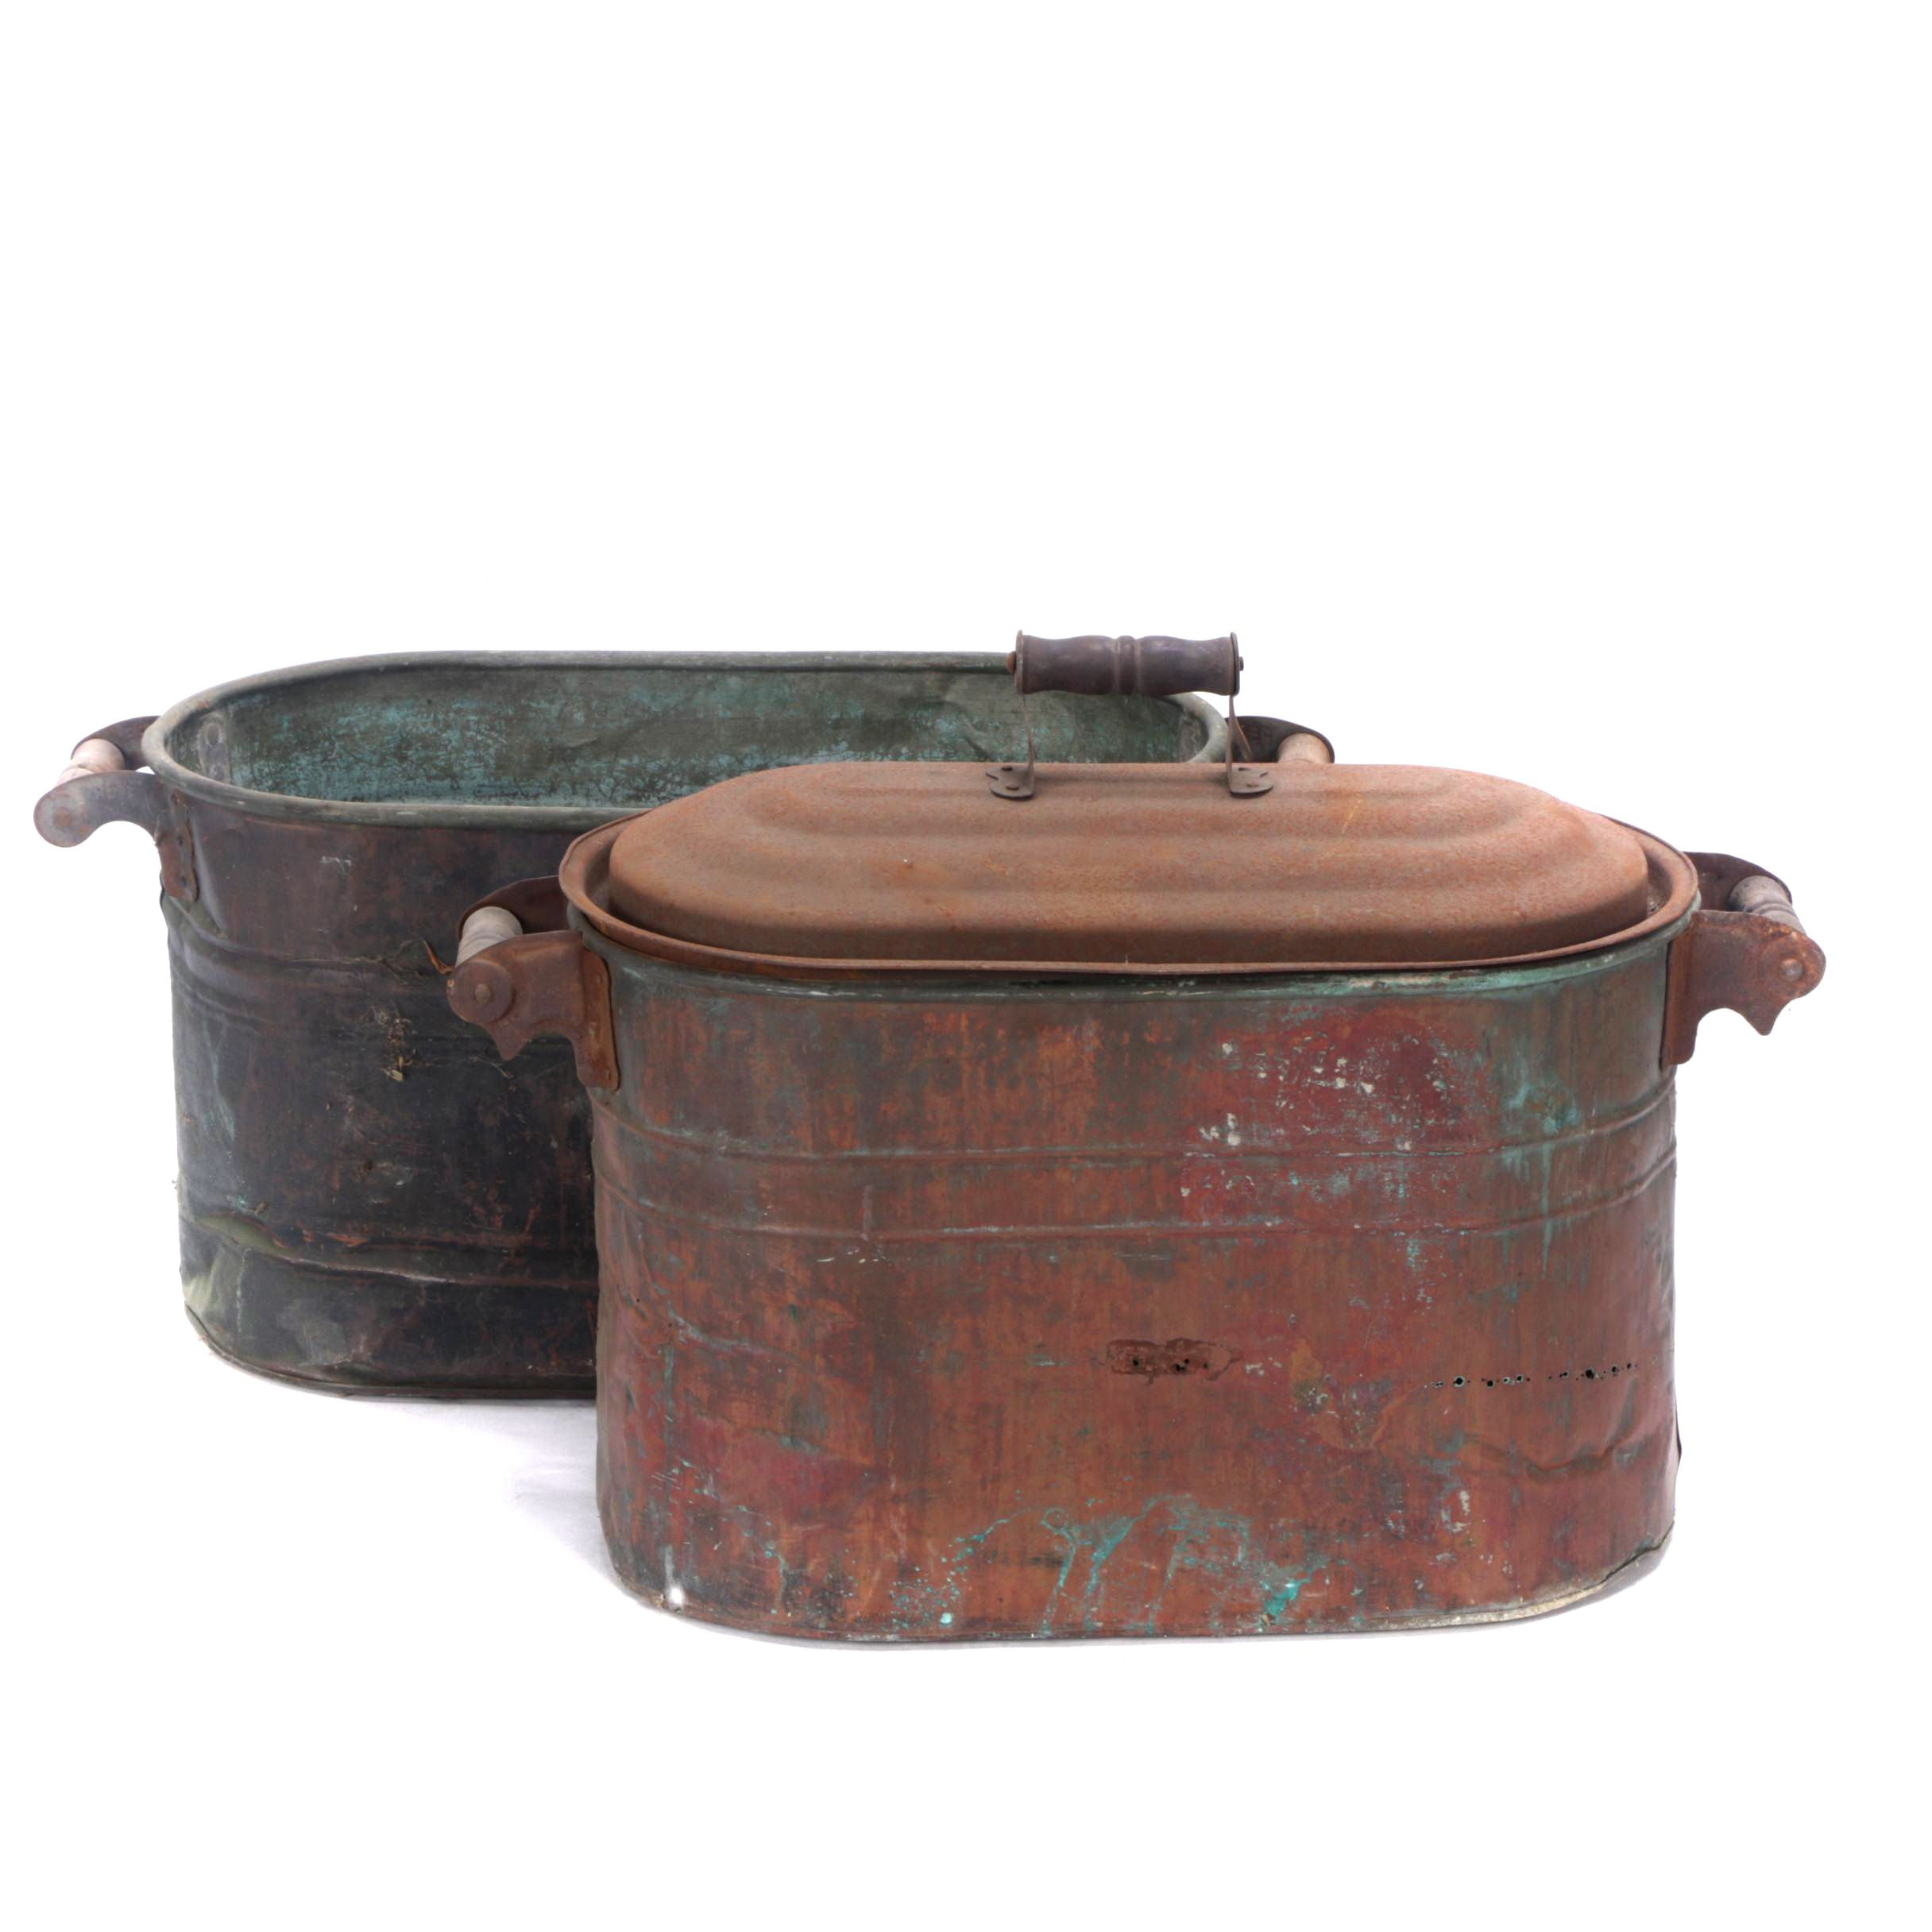 Copper and Steel Boliers with Lid